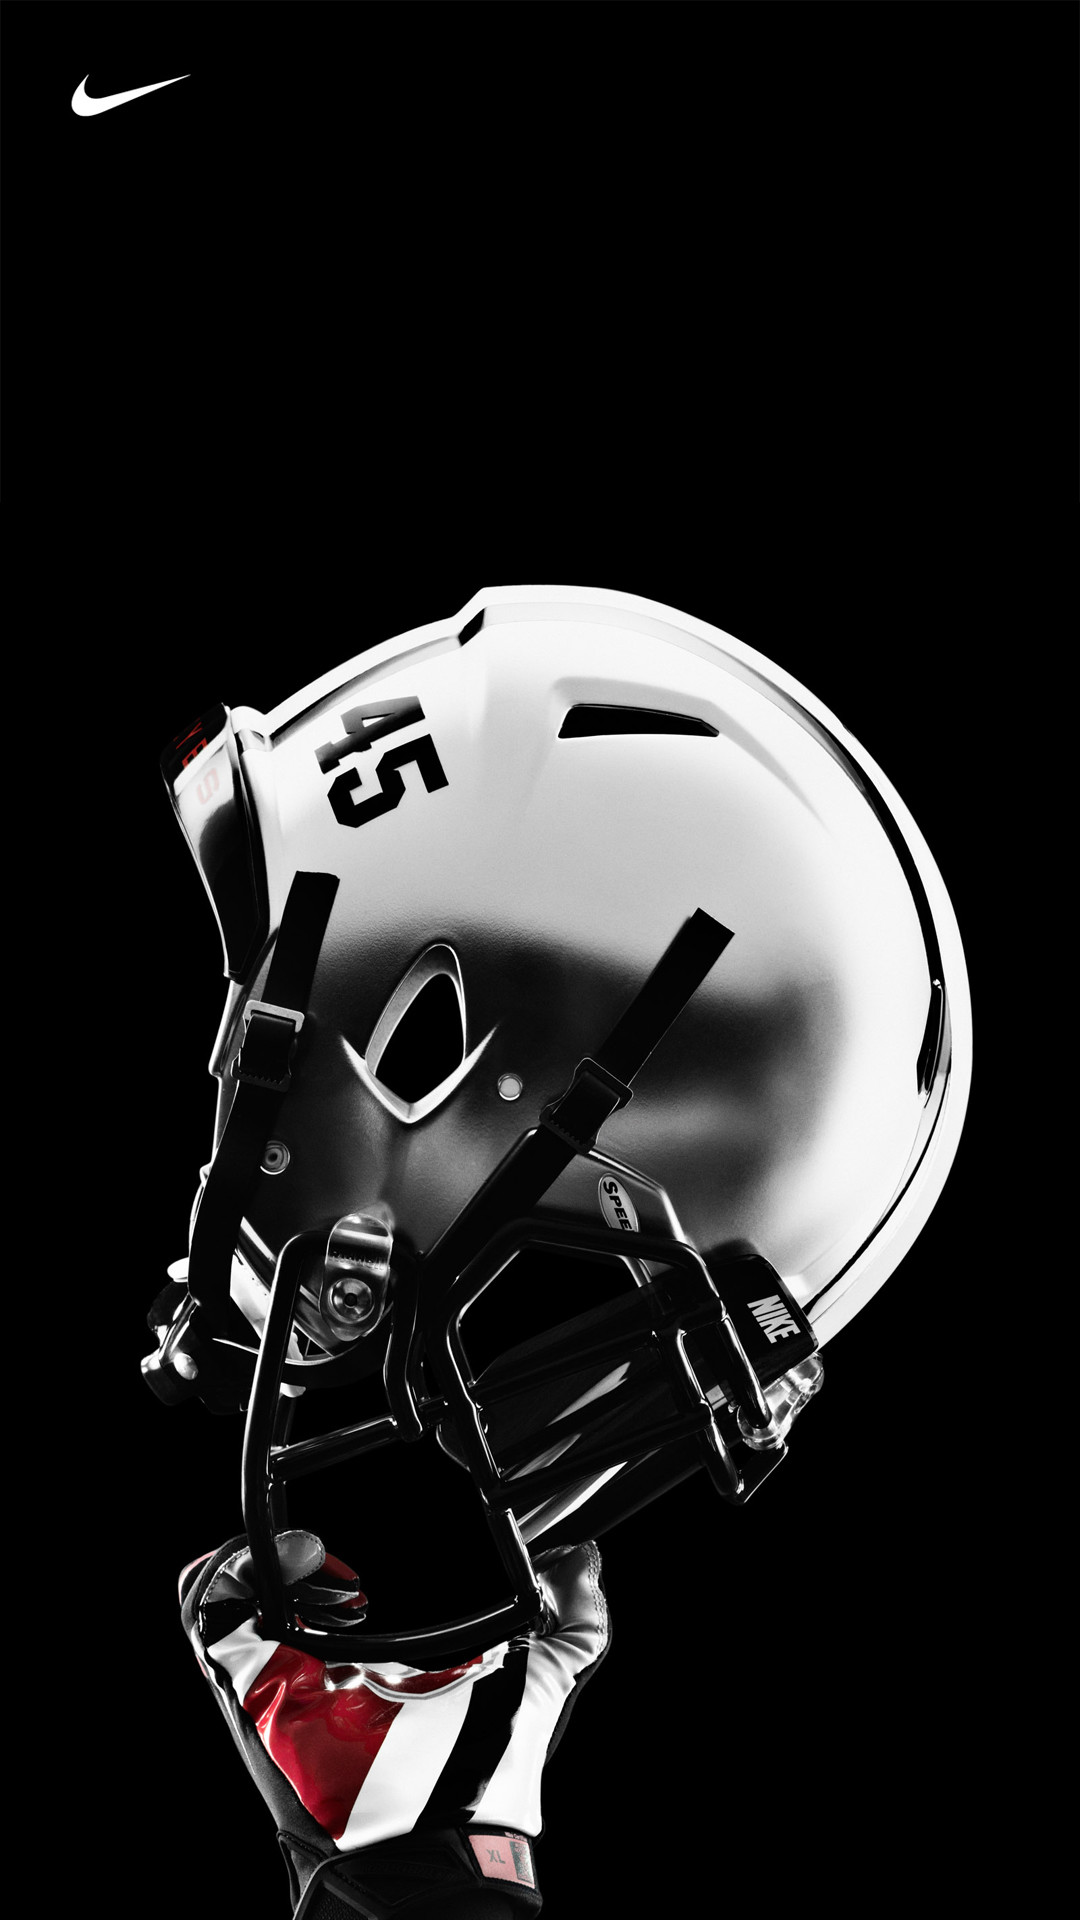 Oakland Raiders Wallpaper Screensavers 71 Images 1080x1920 Harley Davidson Free